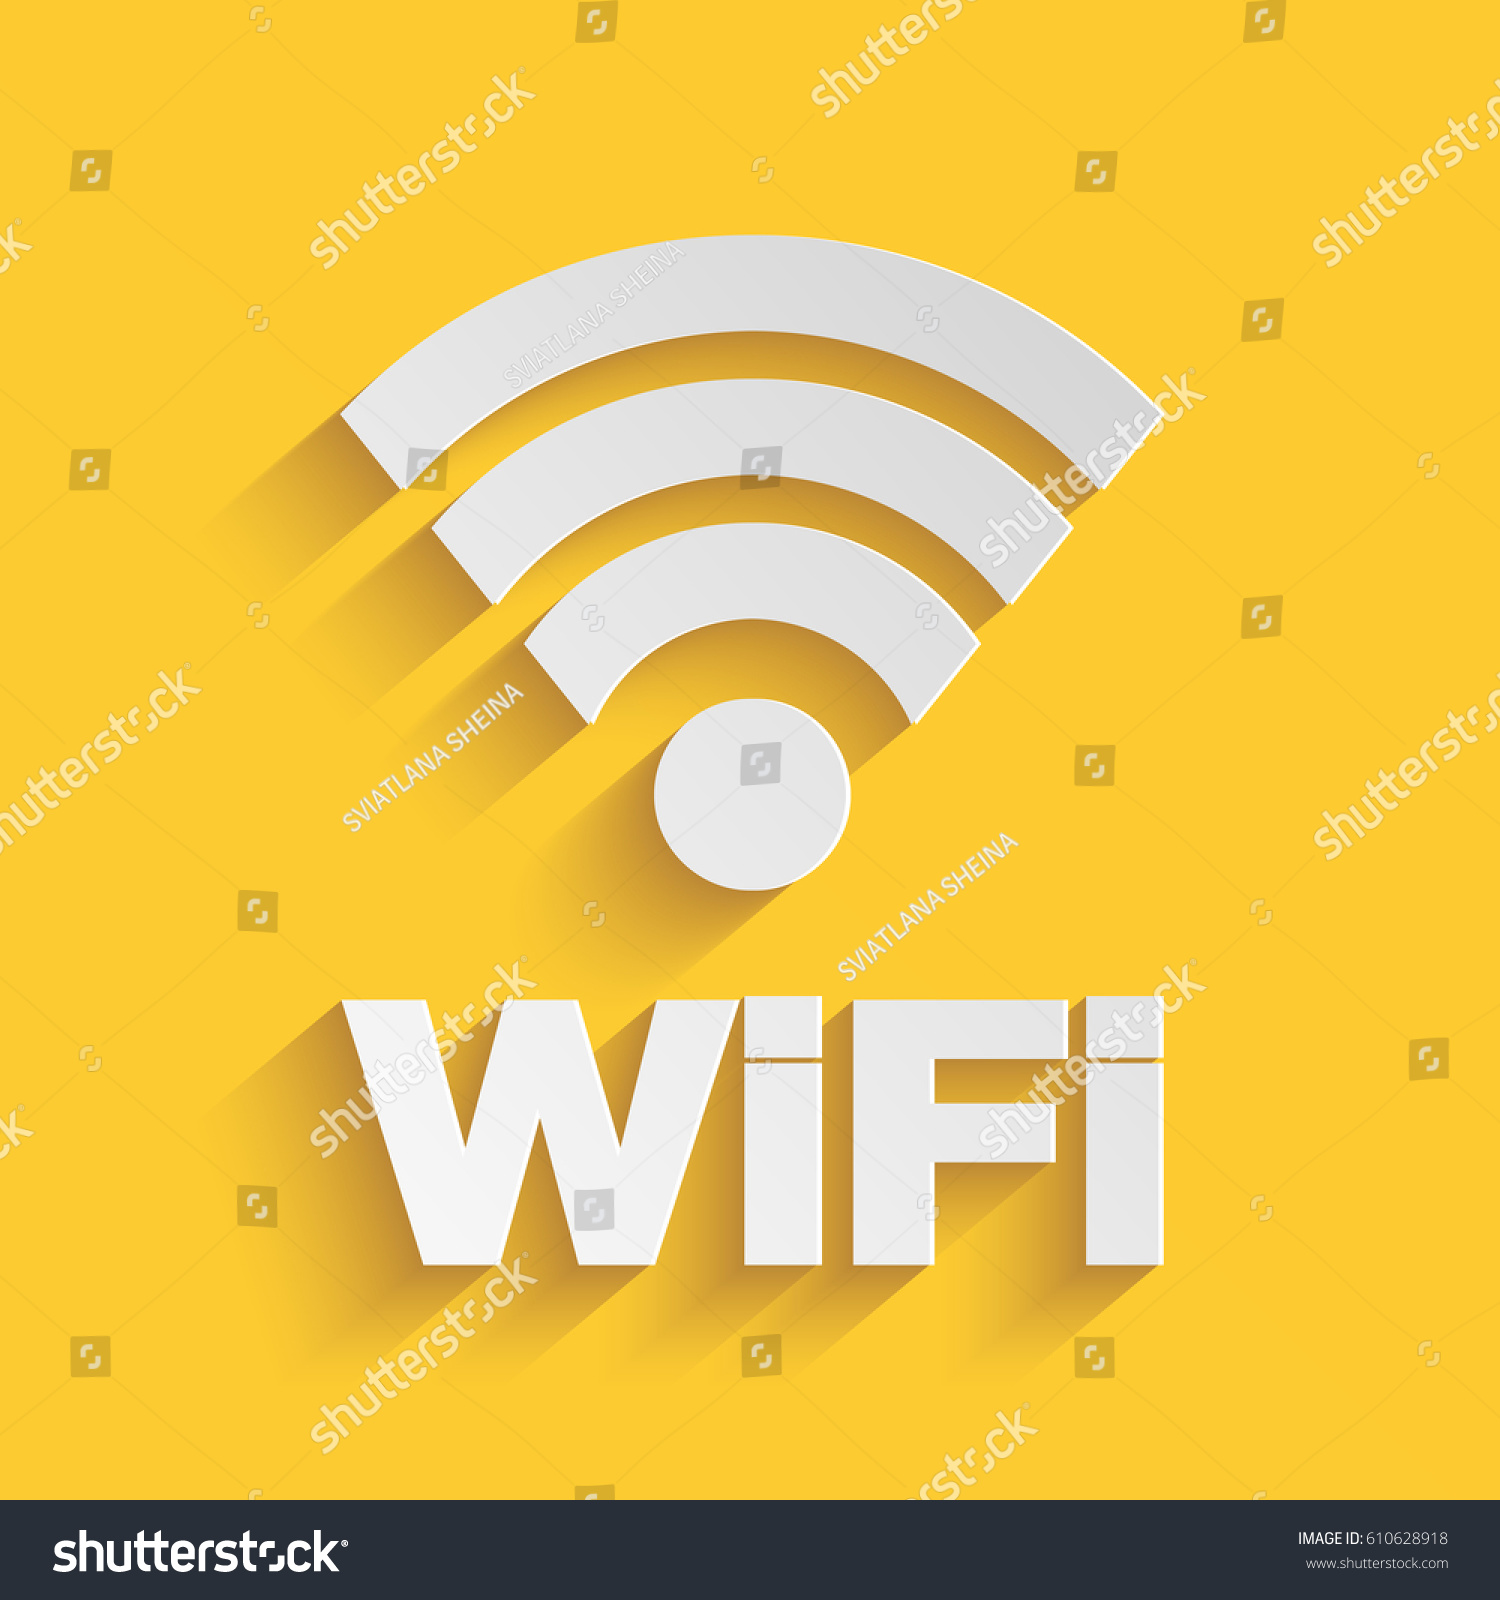 Internet connection symbol icon stock vector 610628918 shutterstock internet connection symbol icon buycottarizona Images